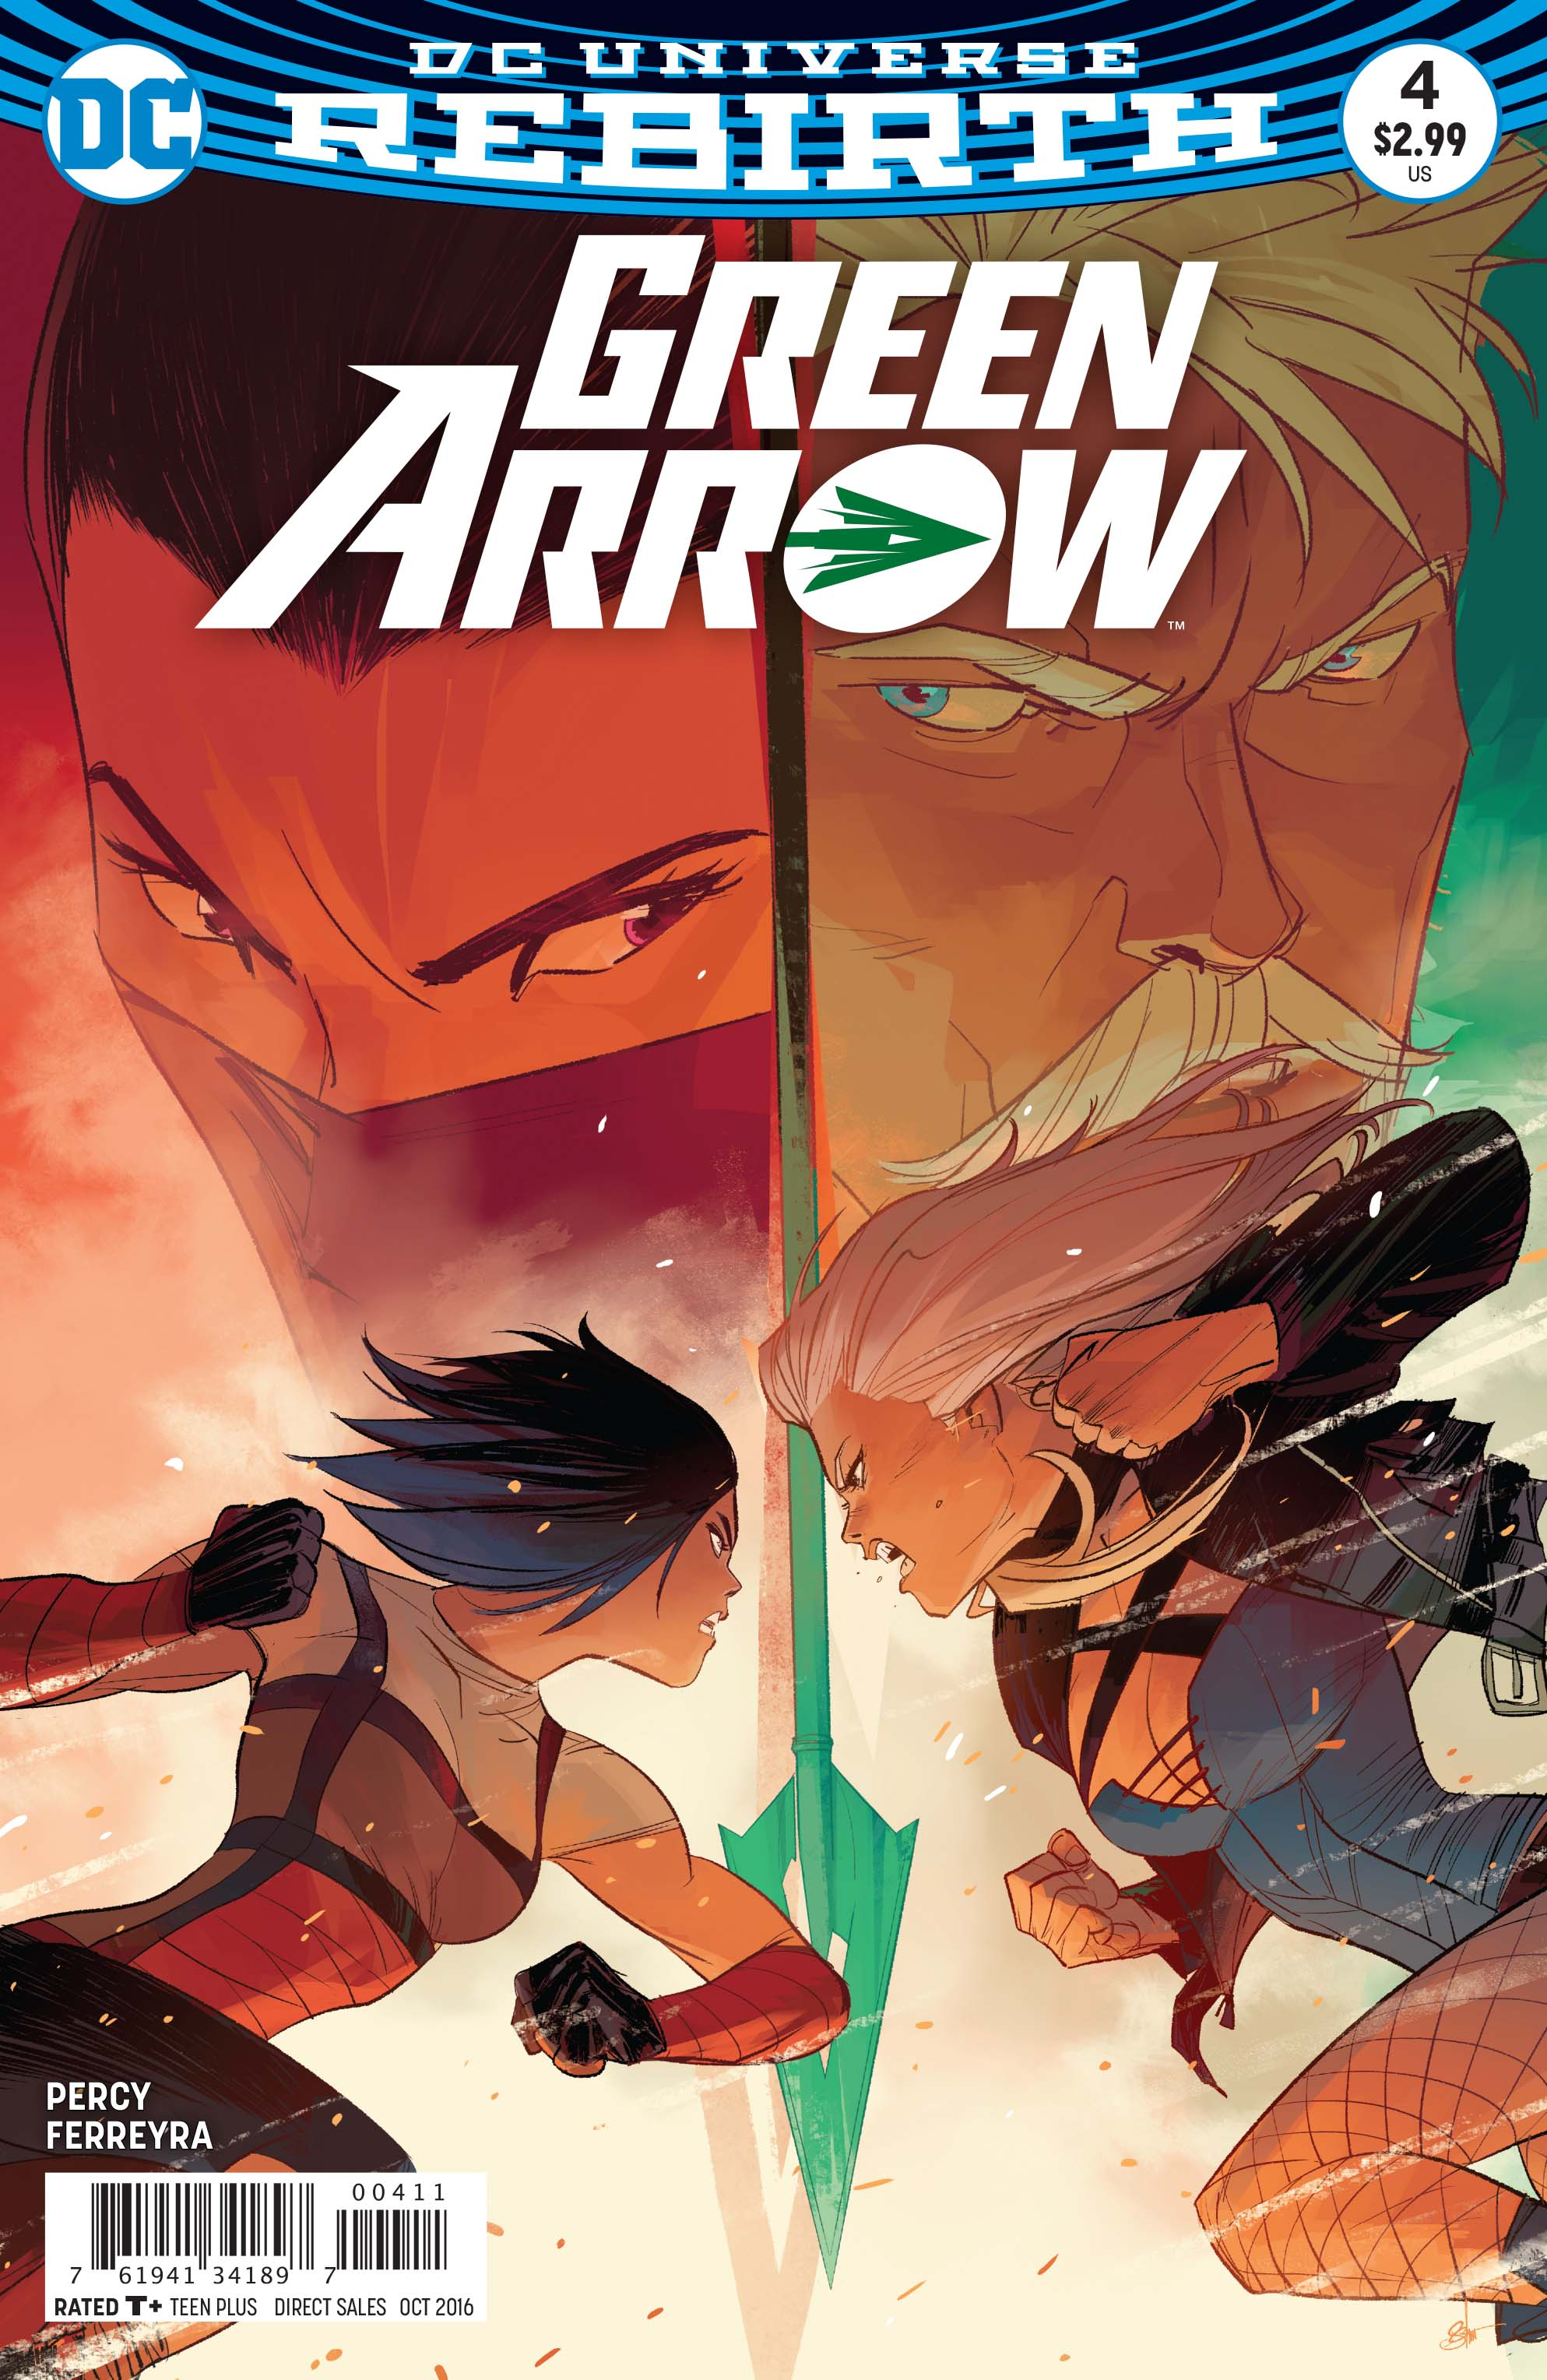 Otto Schmidt's GREEN ARROW